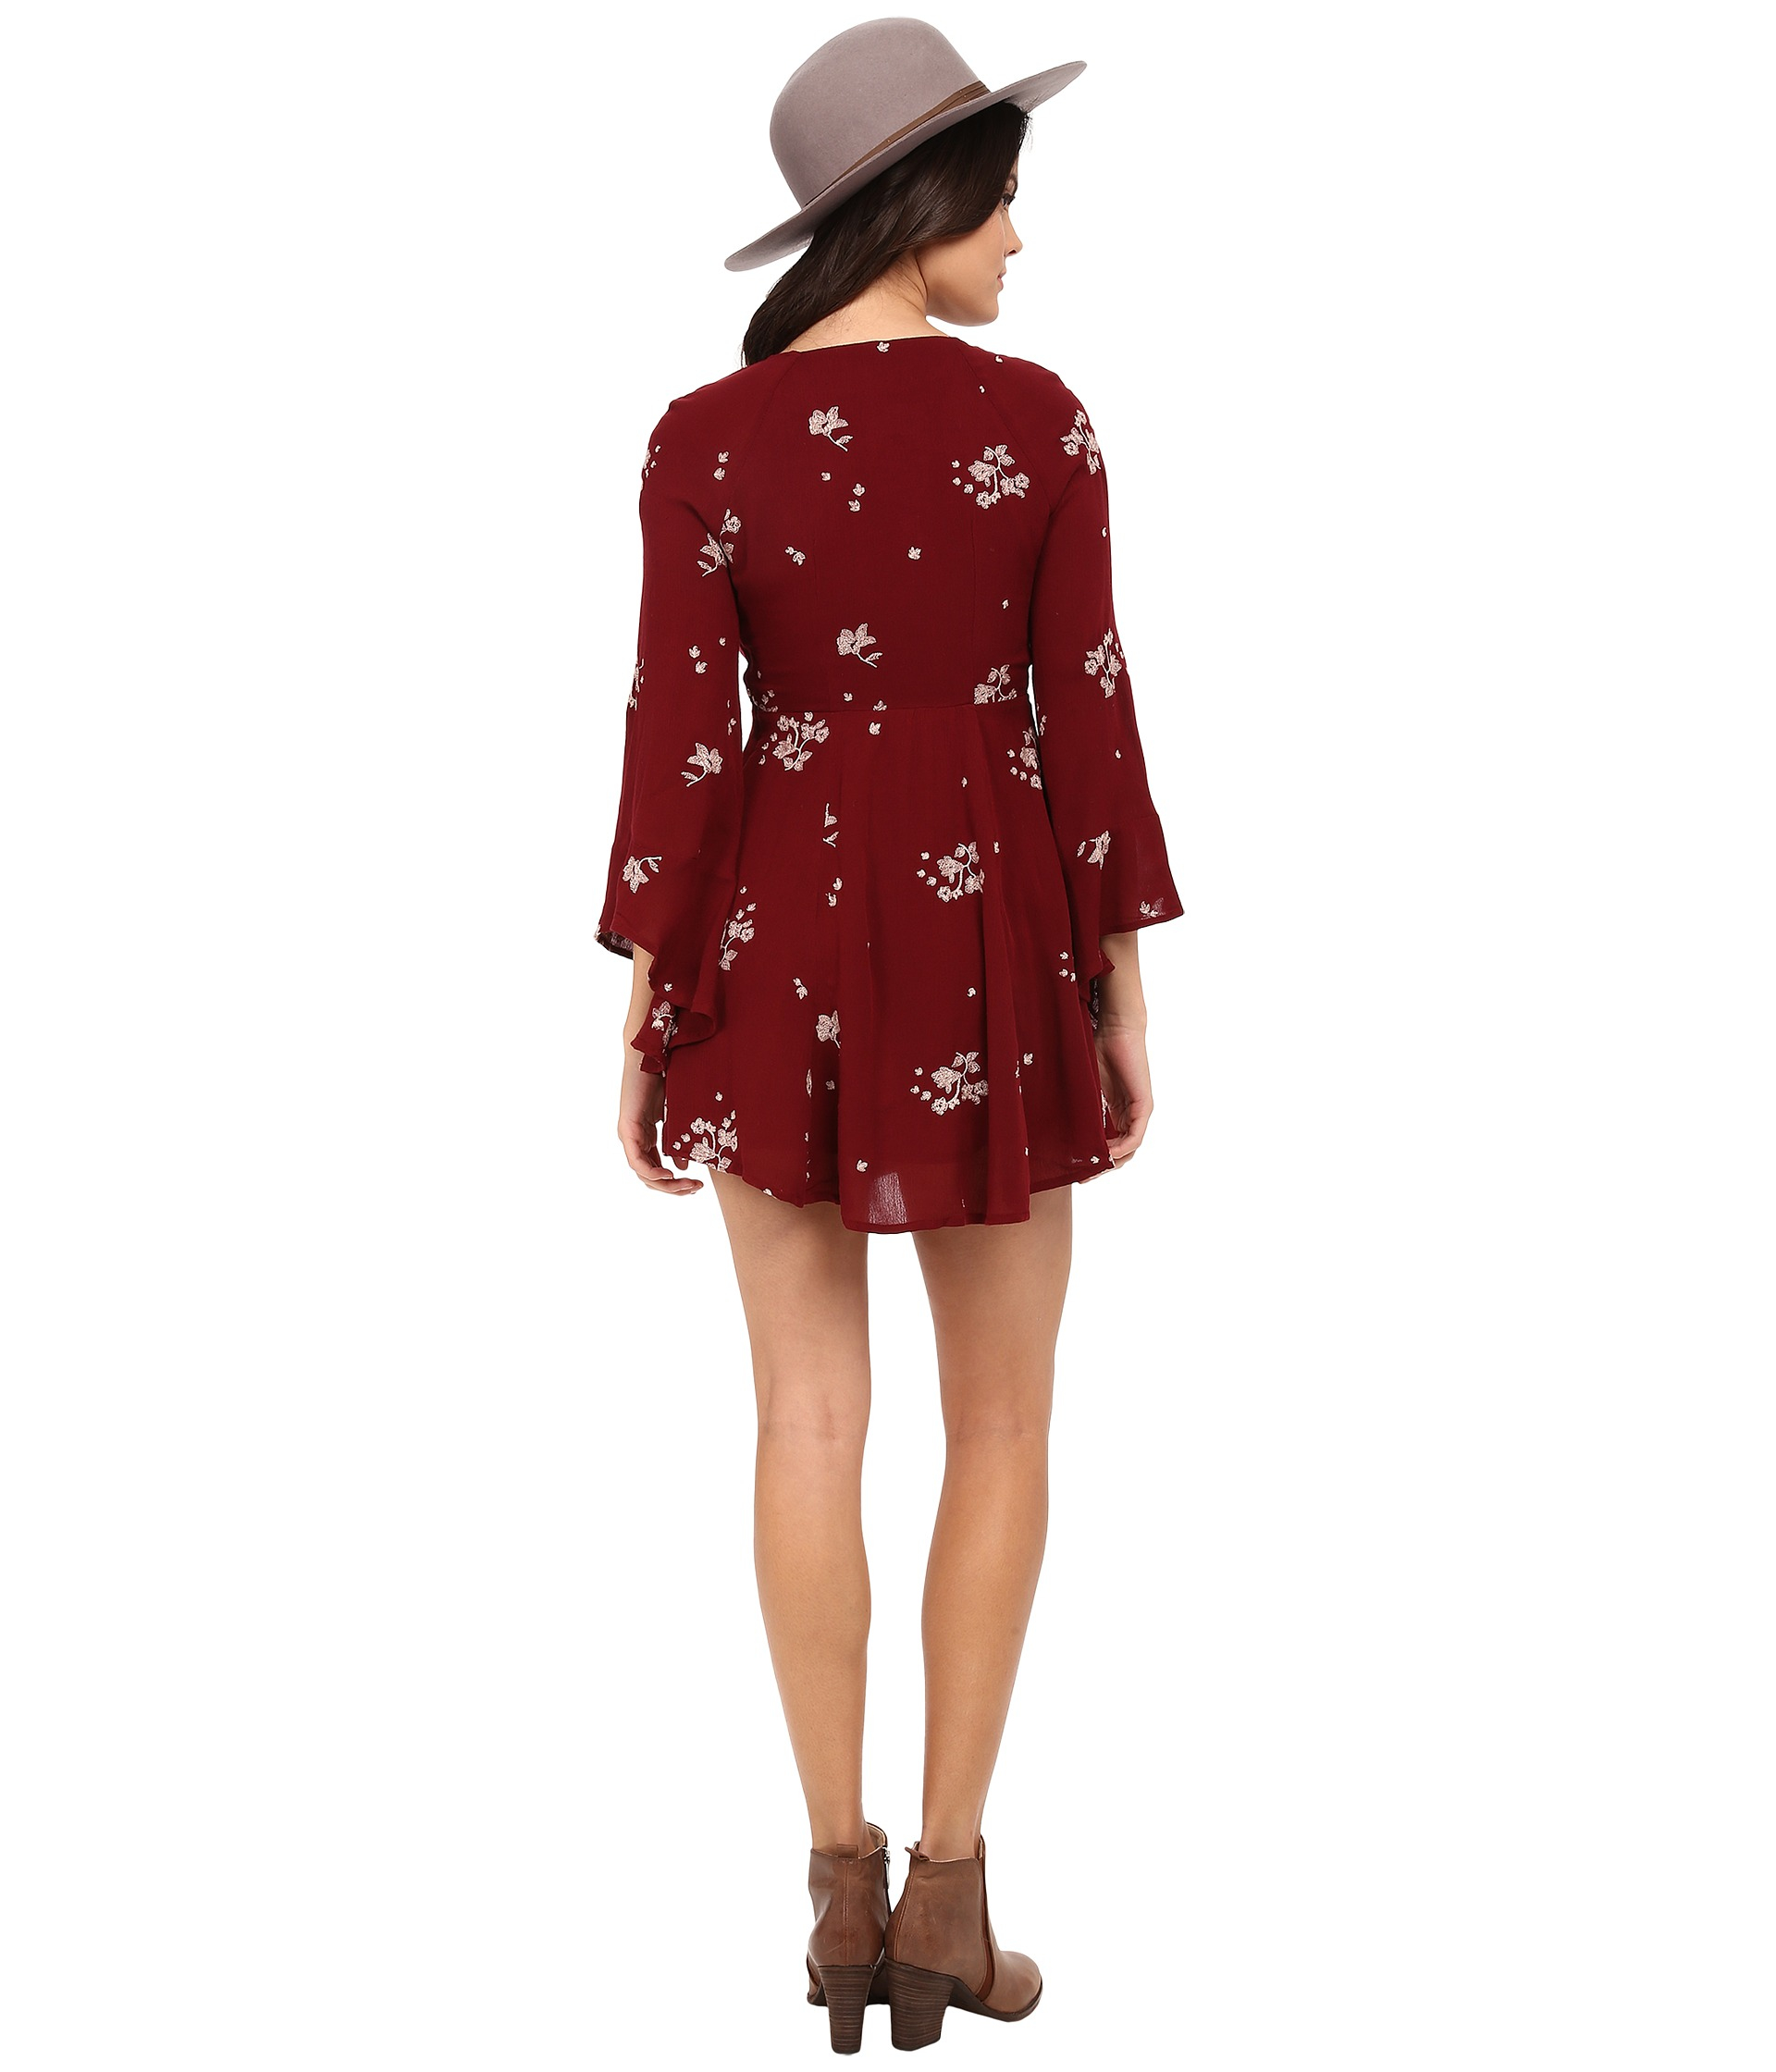 2b4e0403dc0 Free People Jasmine Embroidered Mini Dress in Red - Lyst